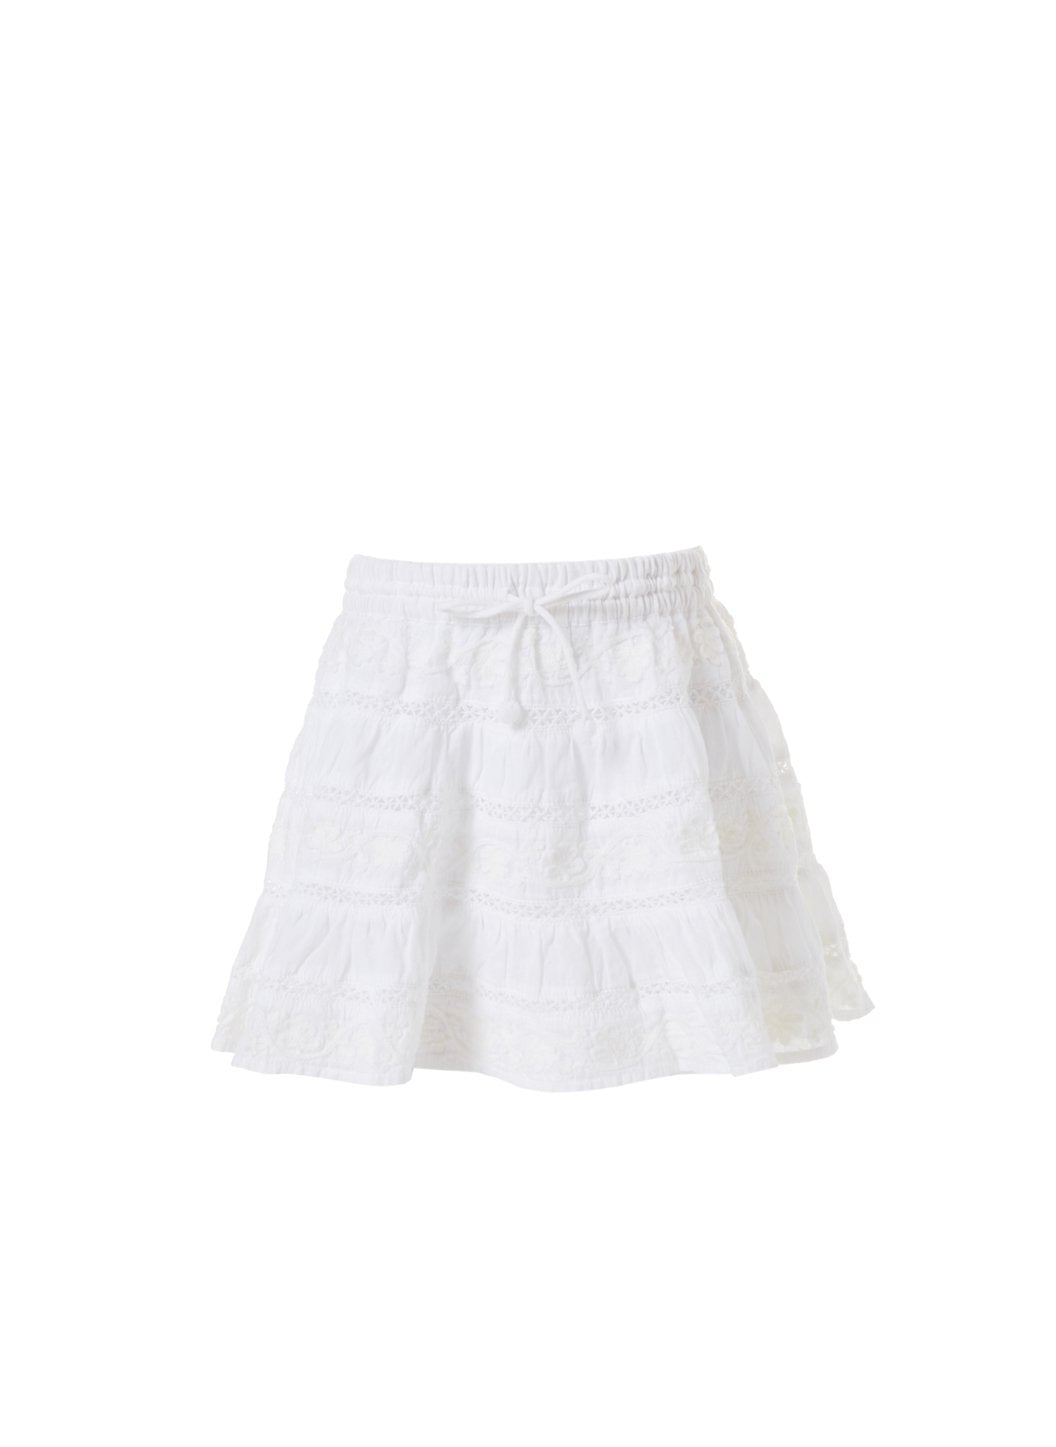 baby anita white skirt 2019